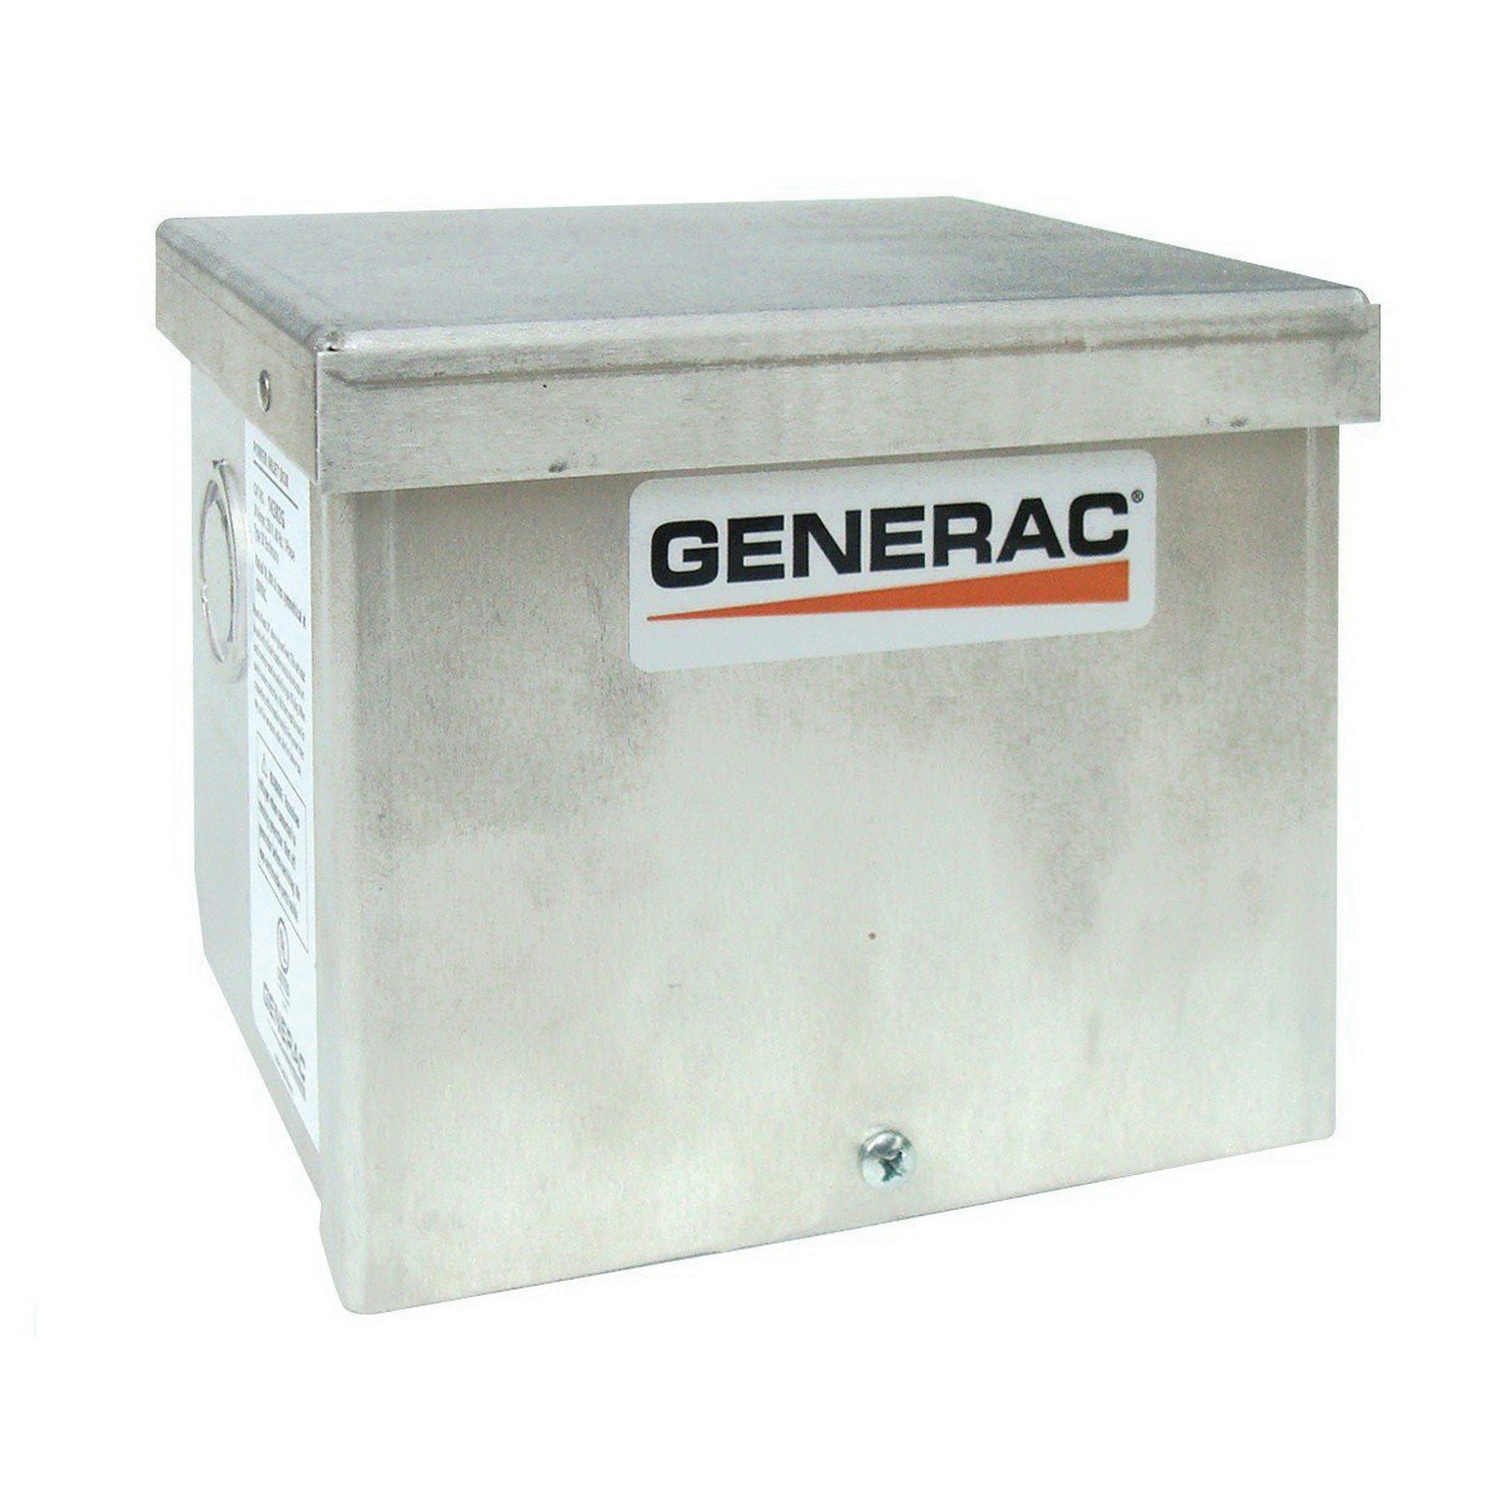 Generac 6344 Power Inlet Box For Use With 50